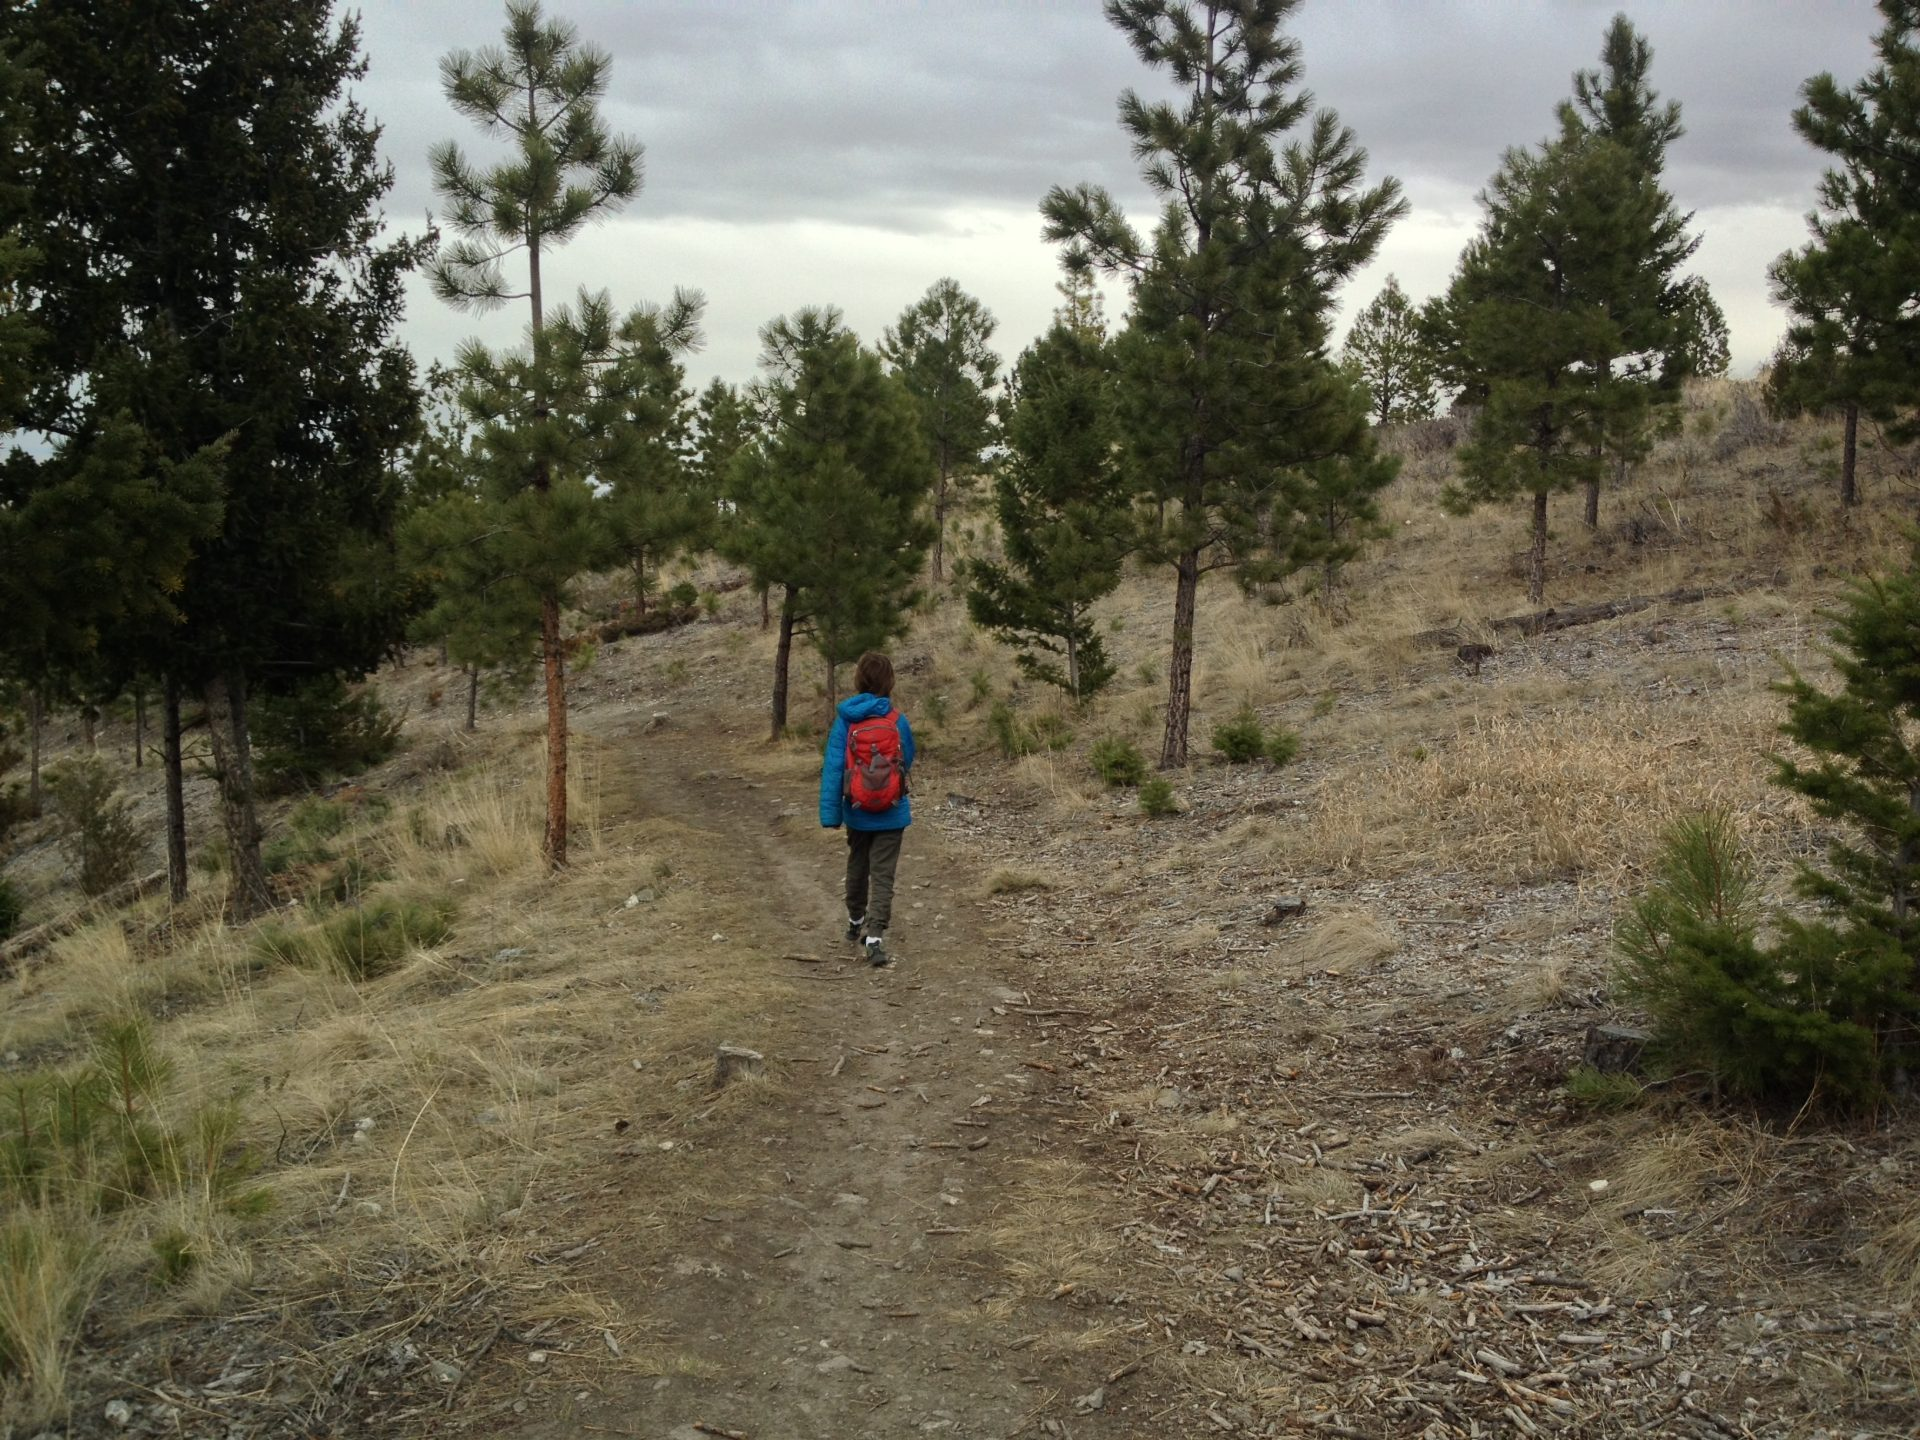 Helena Montana hiking and mountain biking trails